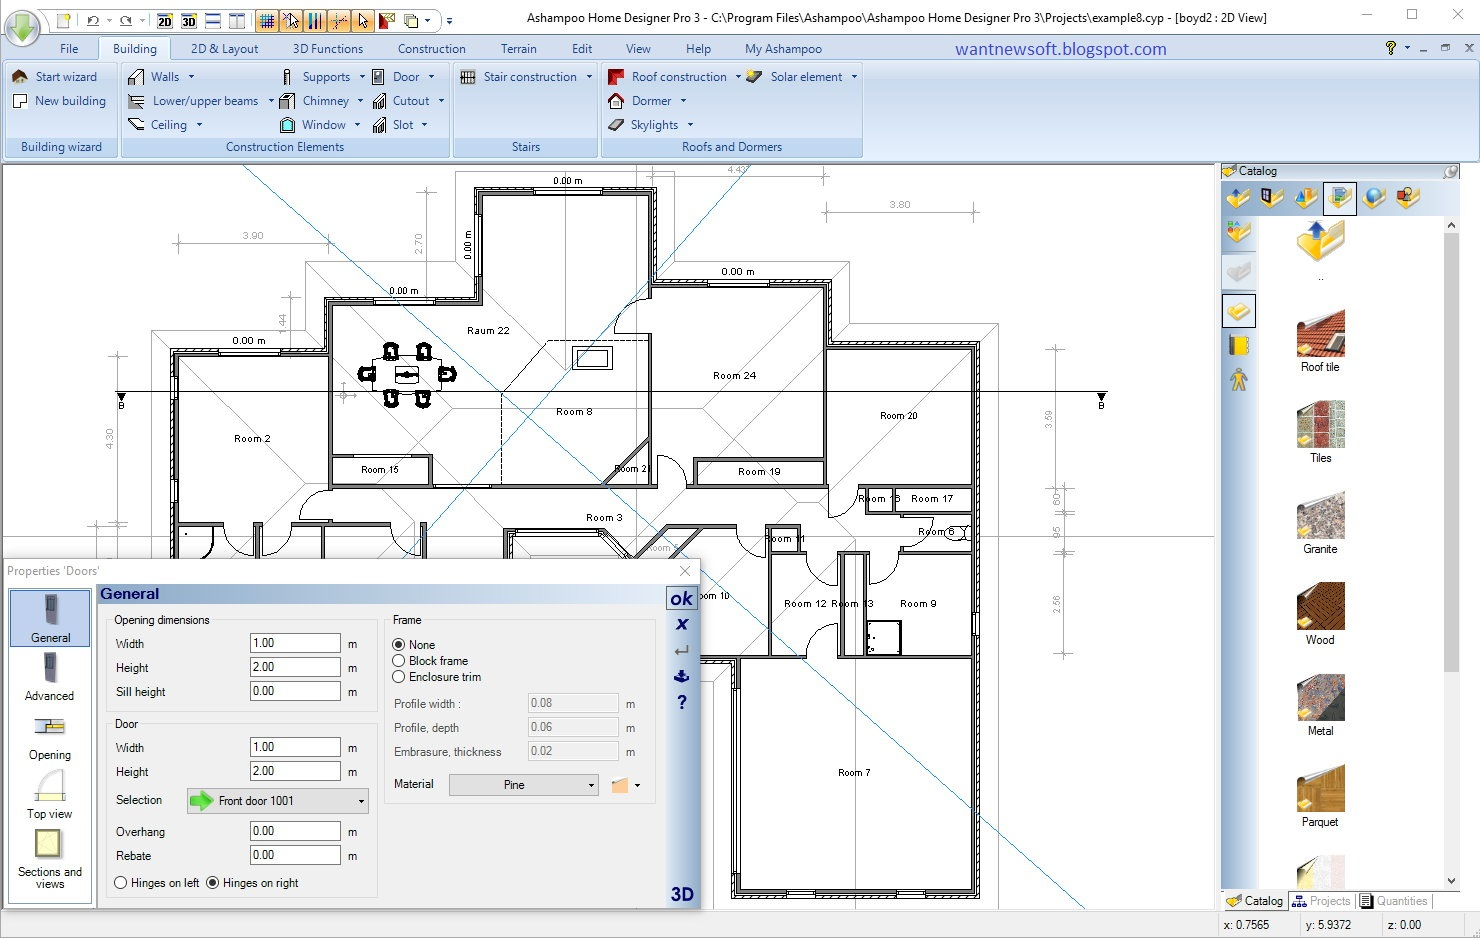 Ashampoo Home Designer Pro 3 Free Download With License For Pc